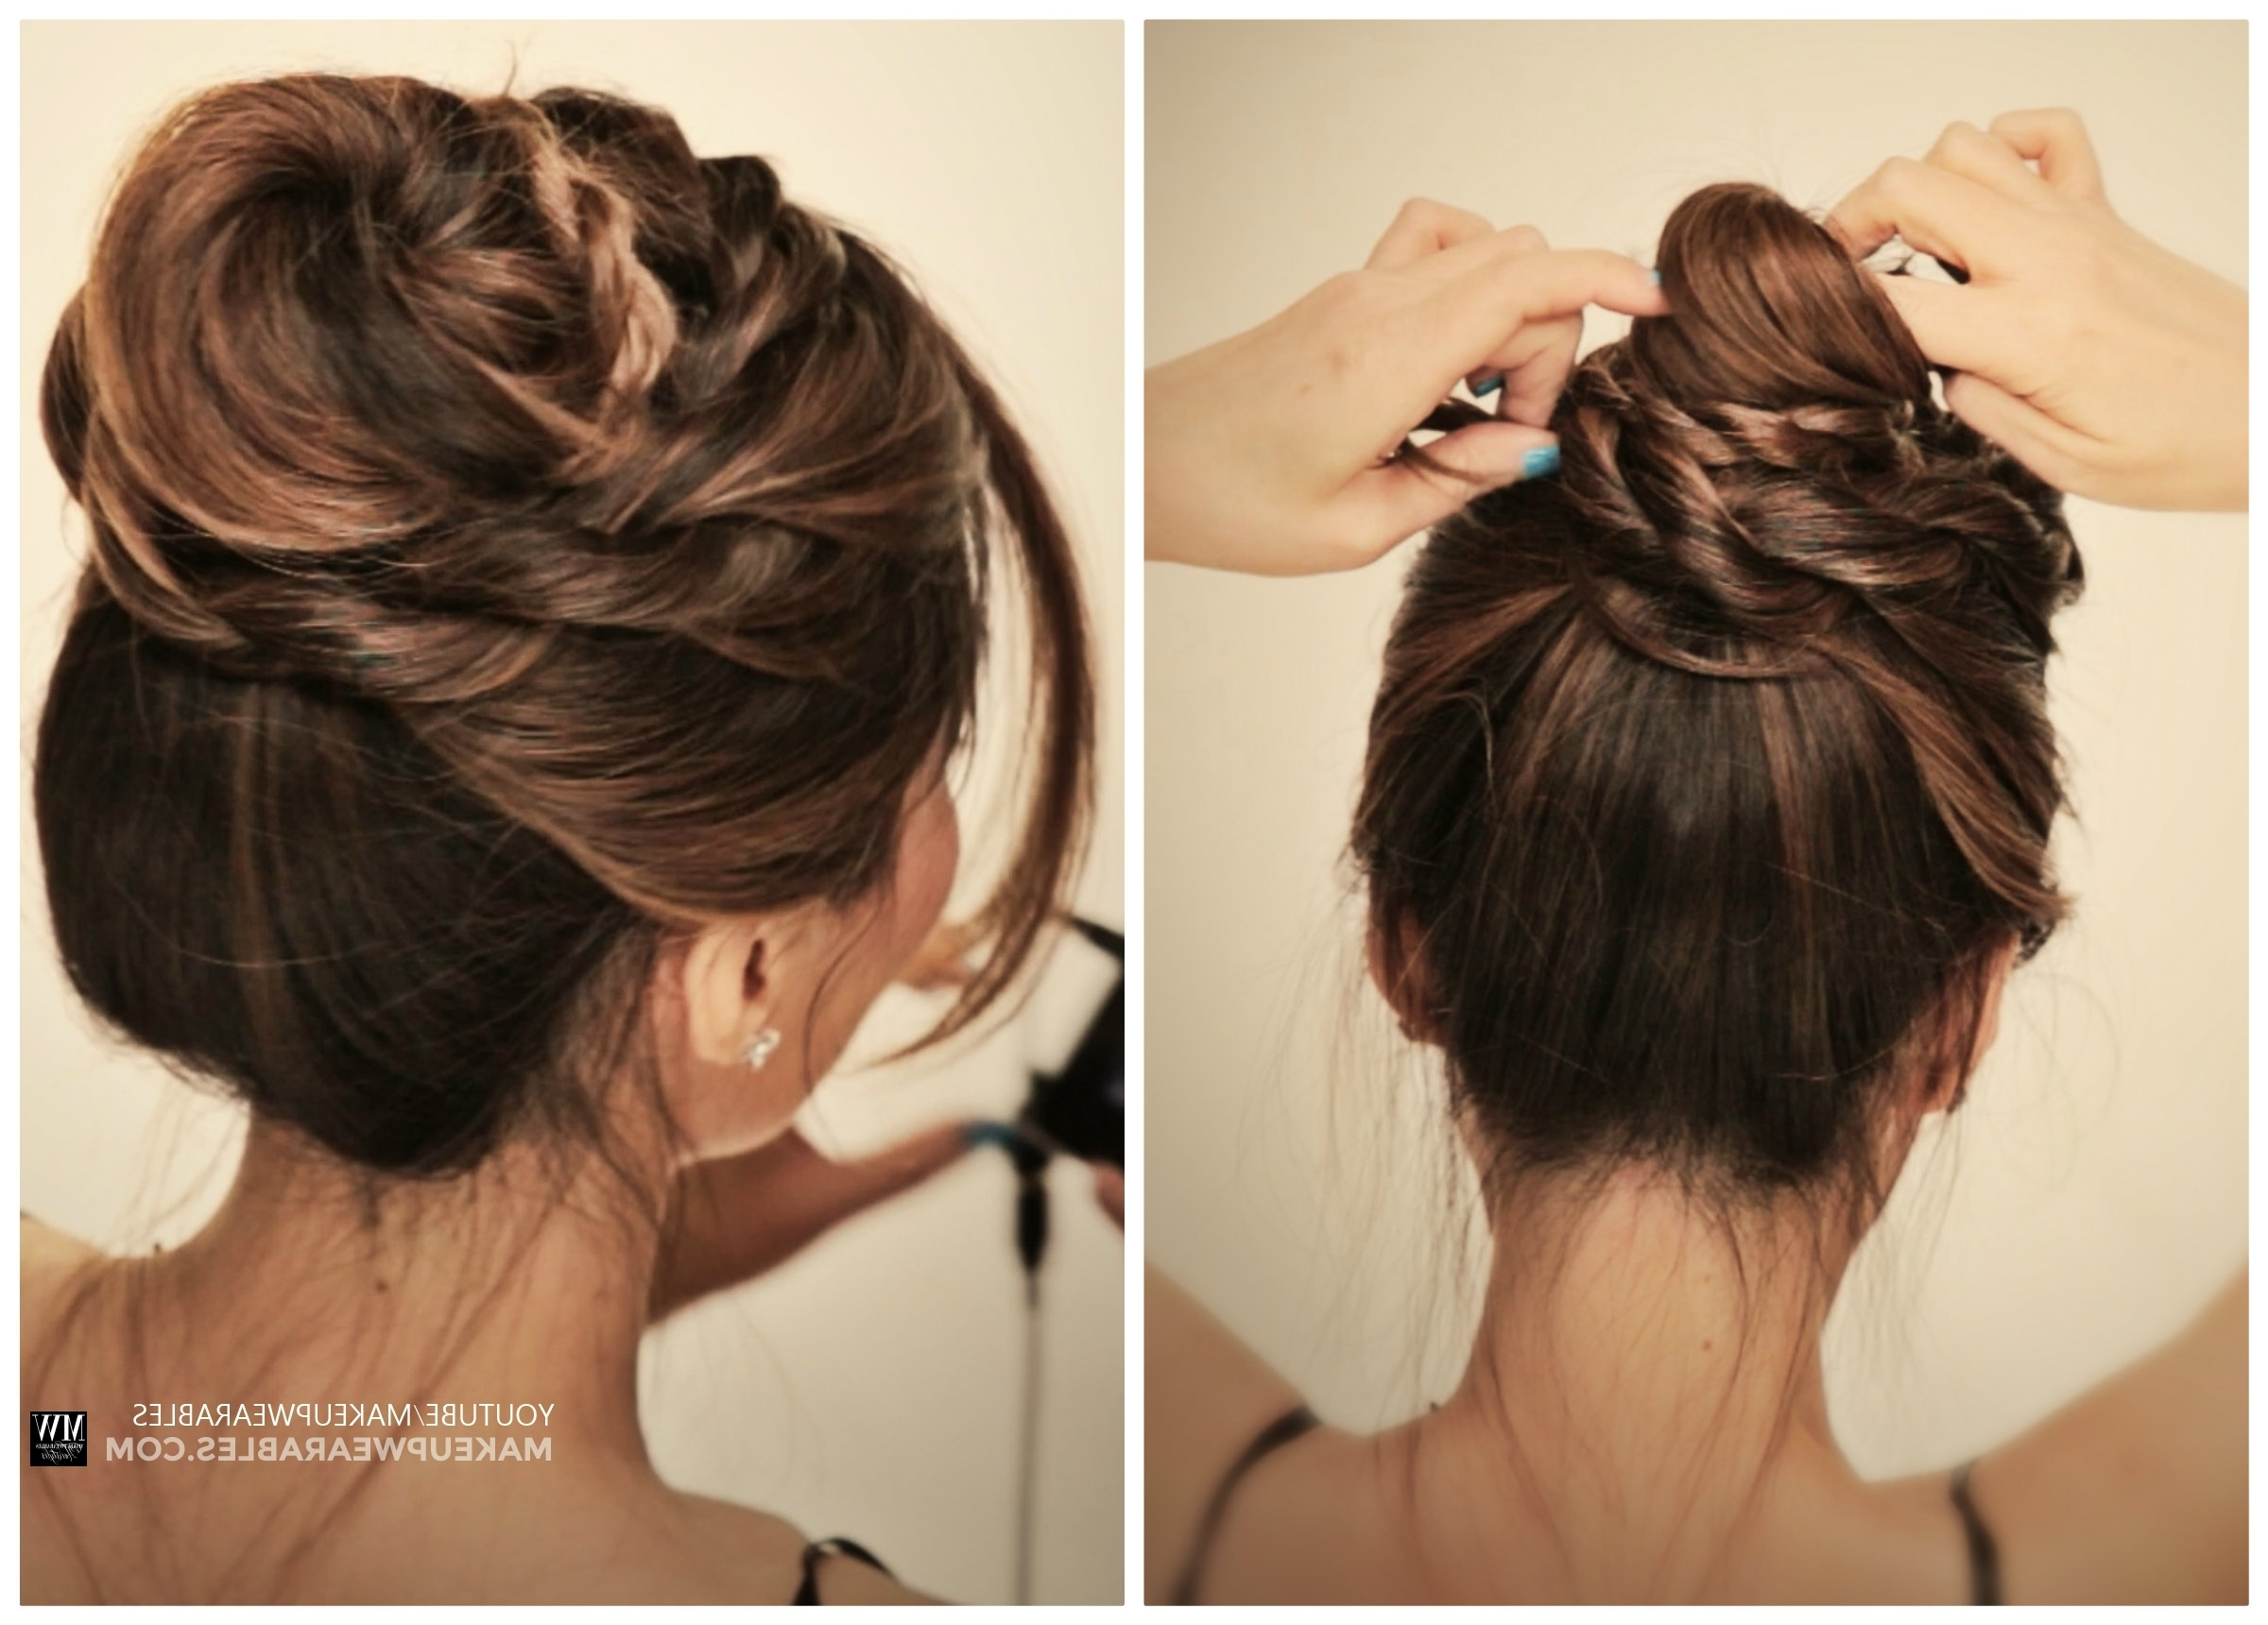 Cute Messy Bun Braids Ballerina Twisted Updo Hairstyle | Medium Hair Within Quick Easy Updo Hairstyles For Long Hair (View 9 of 15)